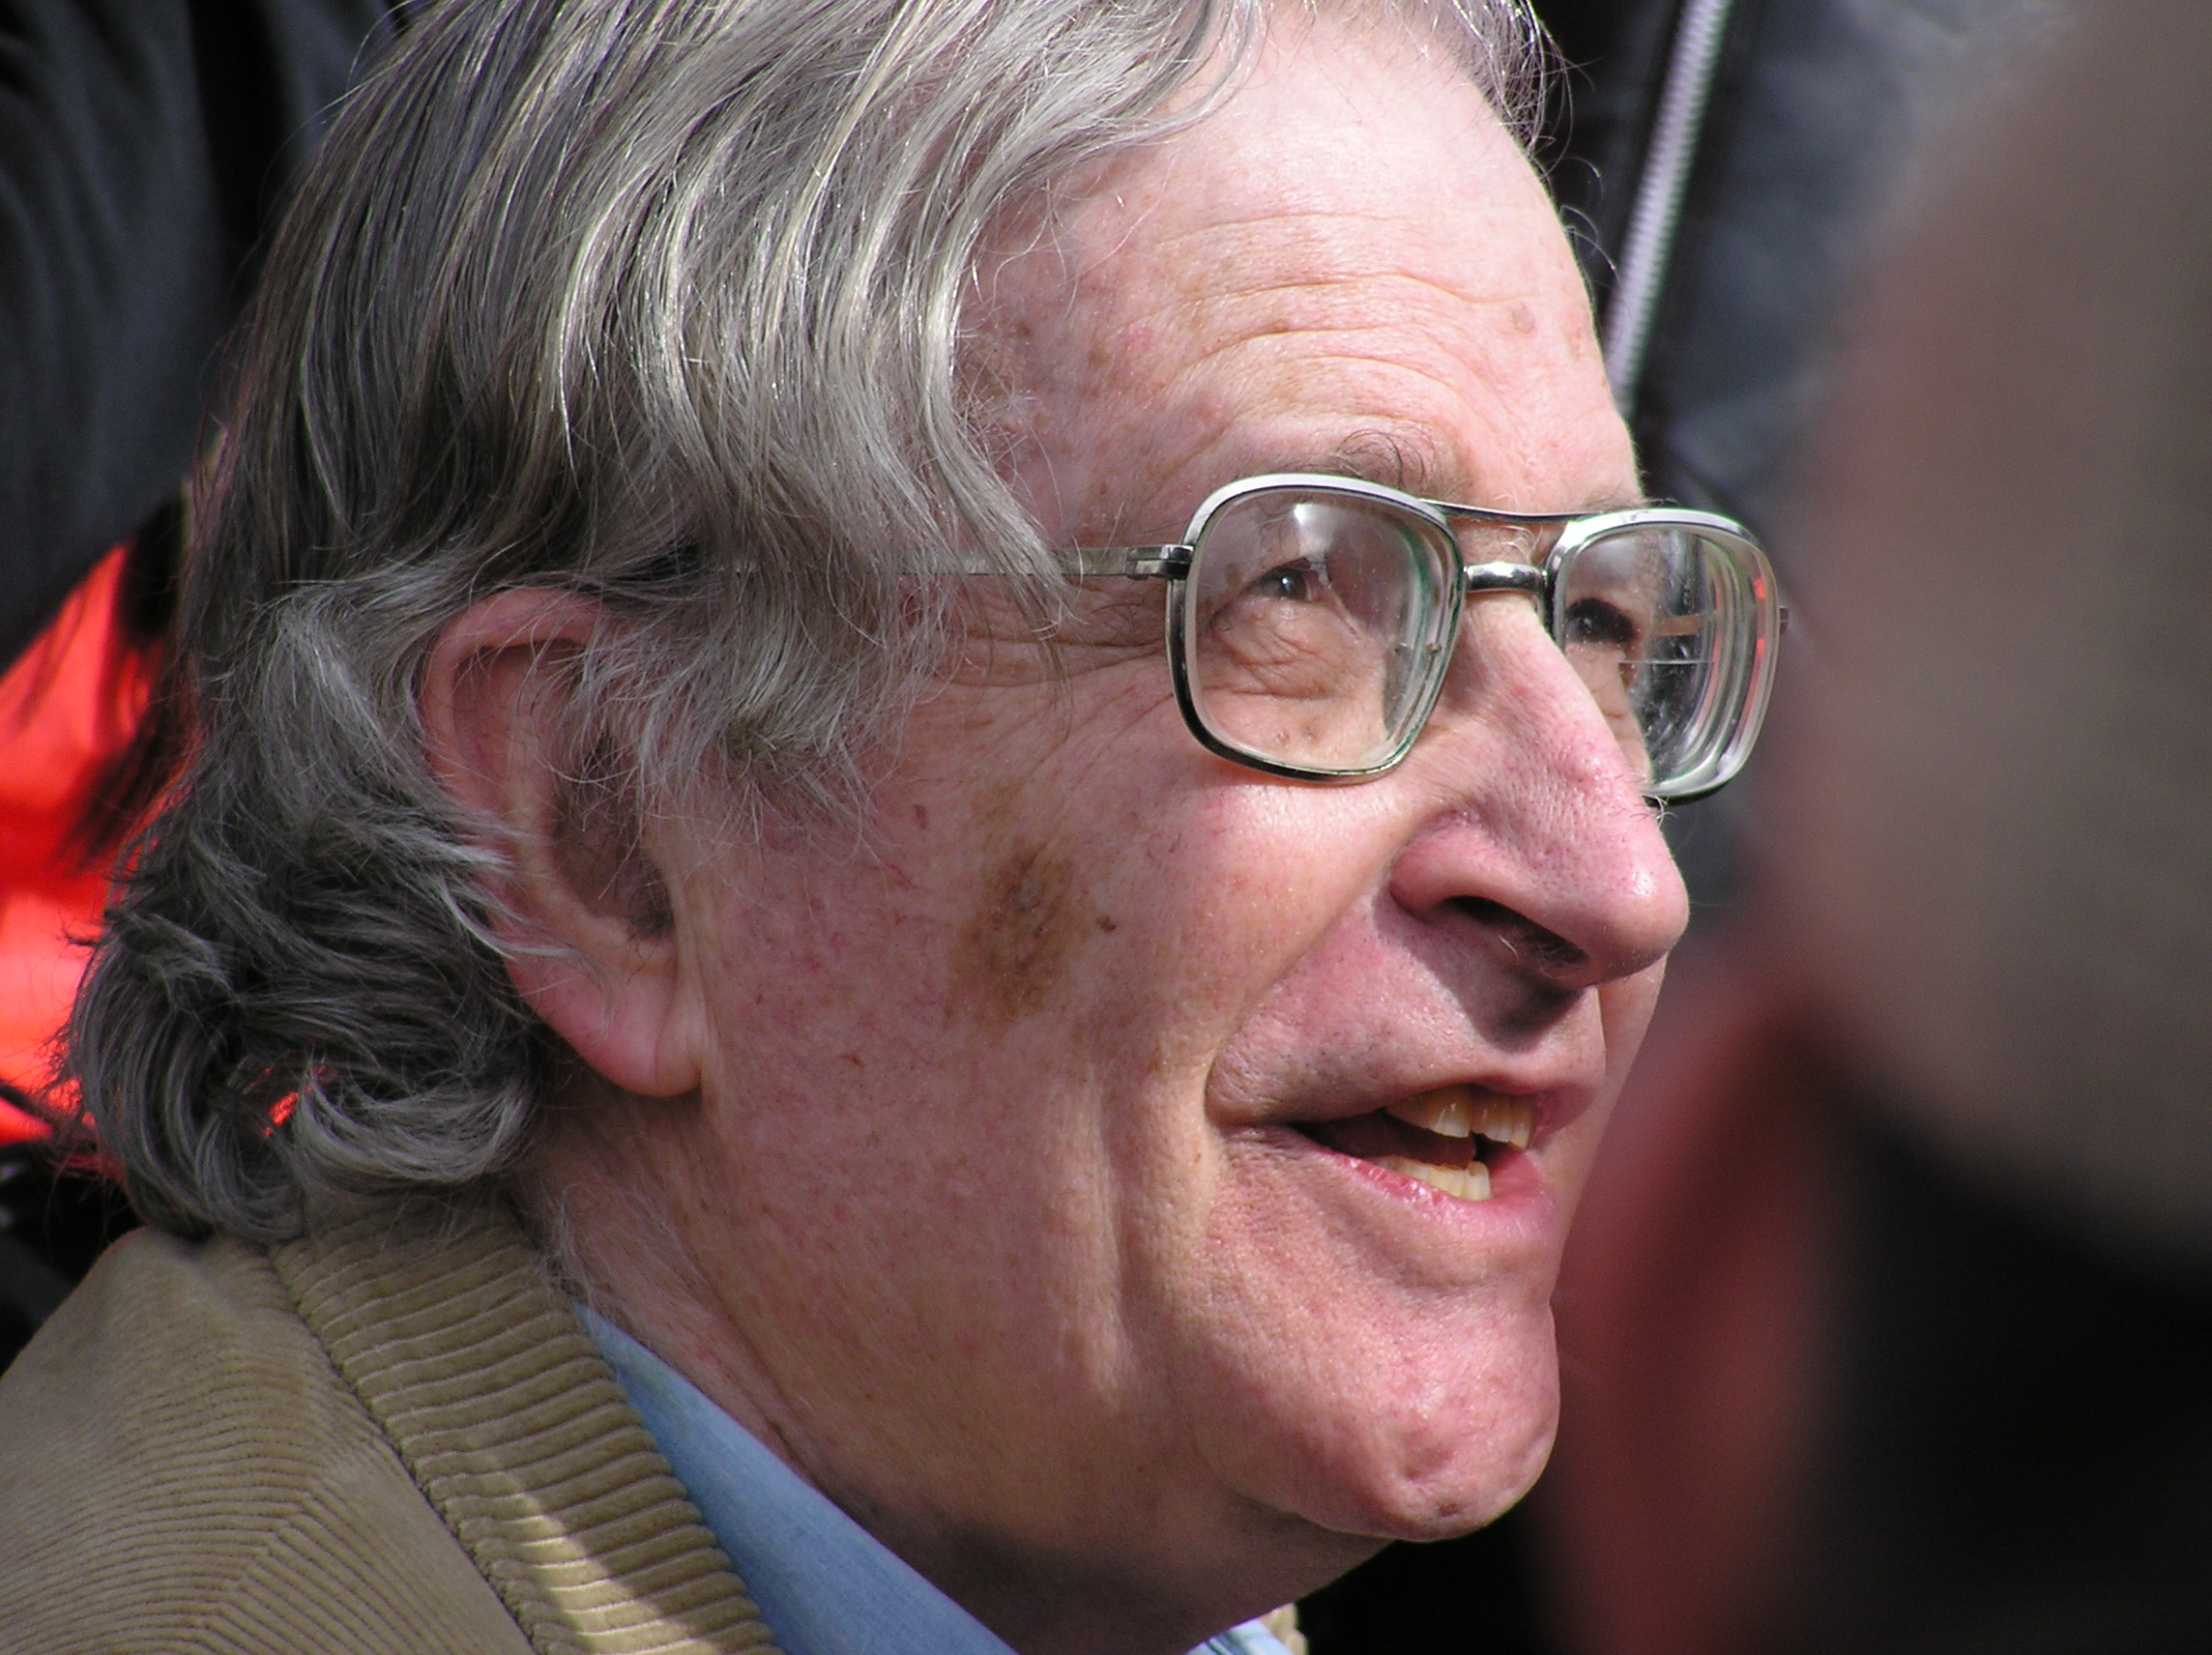 file noam chomsky flickr jpg file noam chomsky flickr 04 jpg